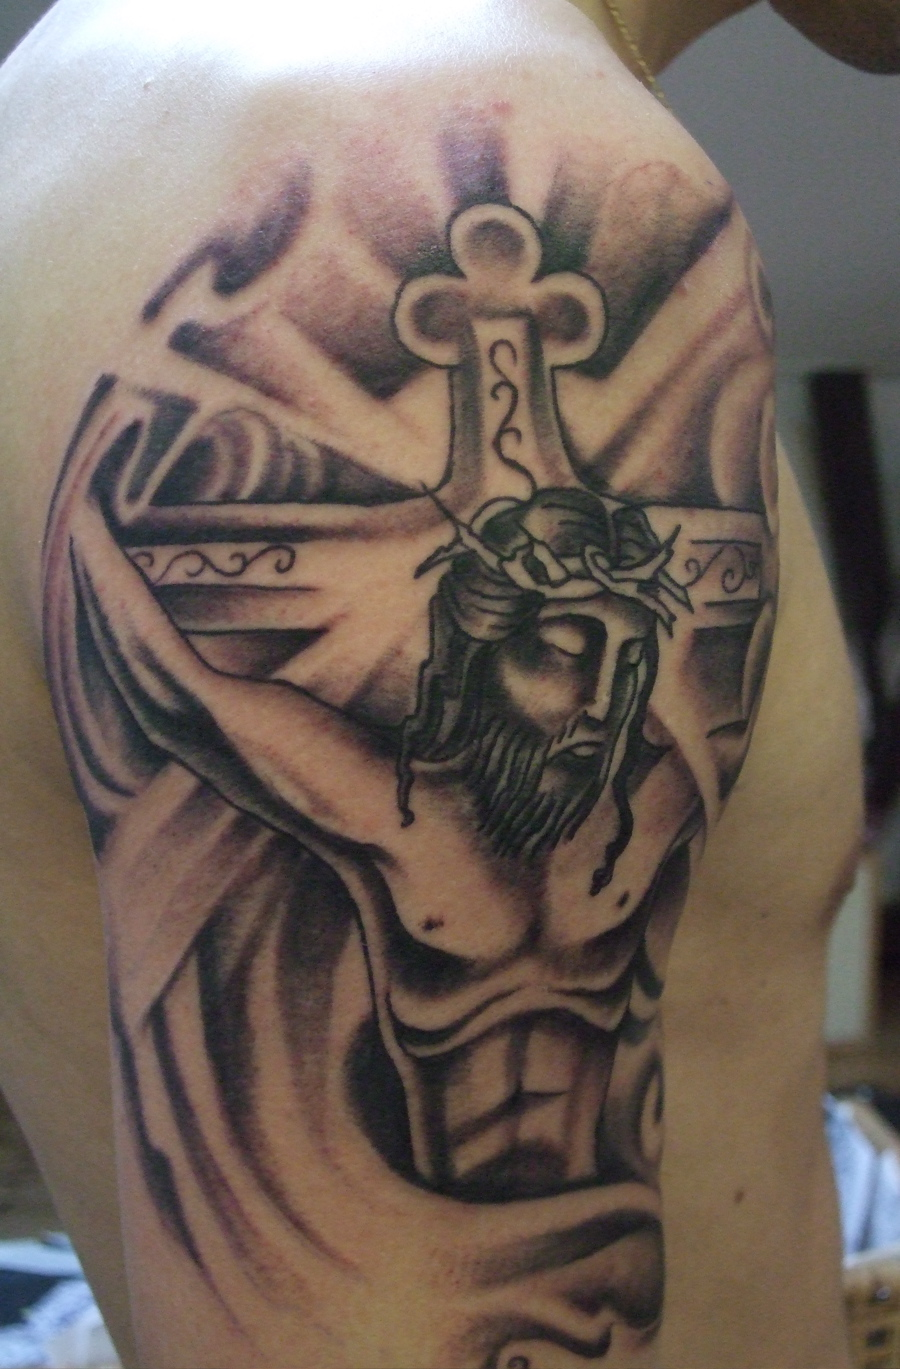 Cross Tattoos Designs Ideas And Meaning Tattoos For You Ideas And Designs